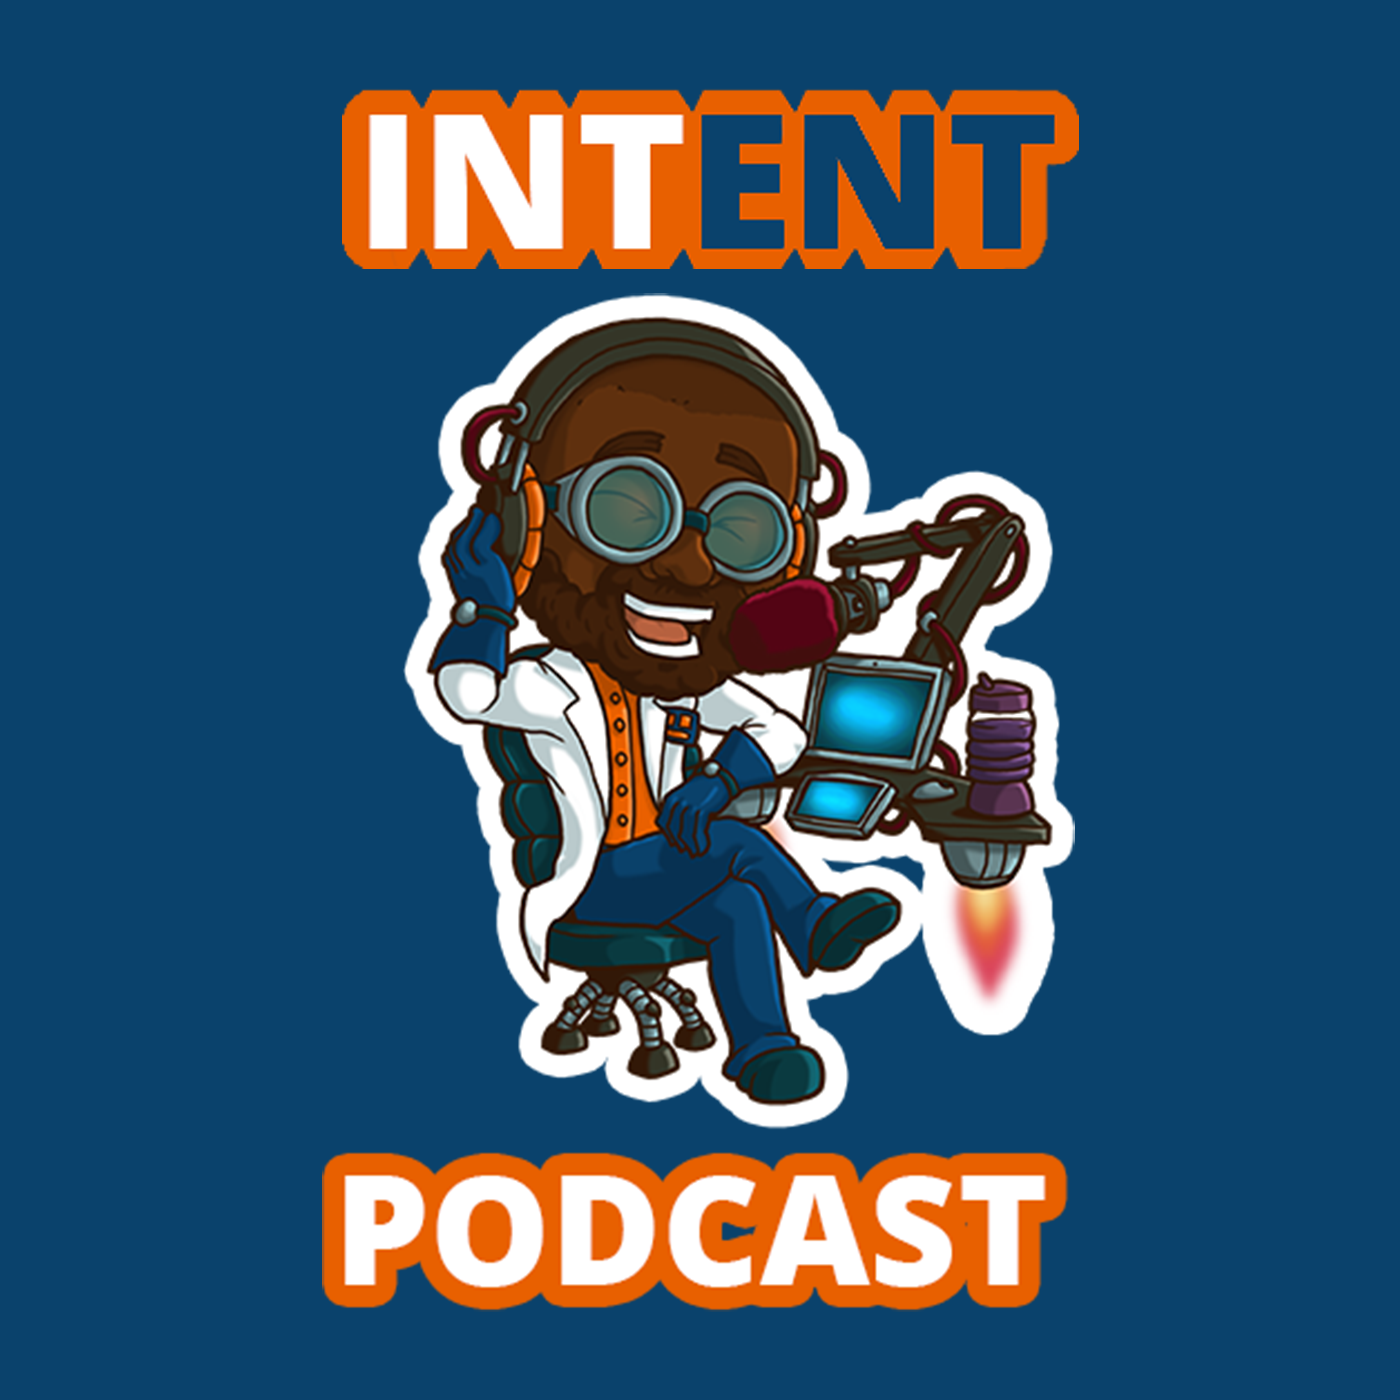 Intent podcast show art